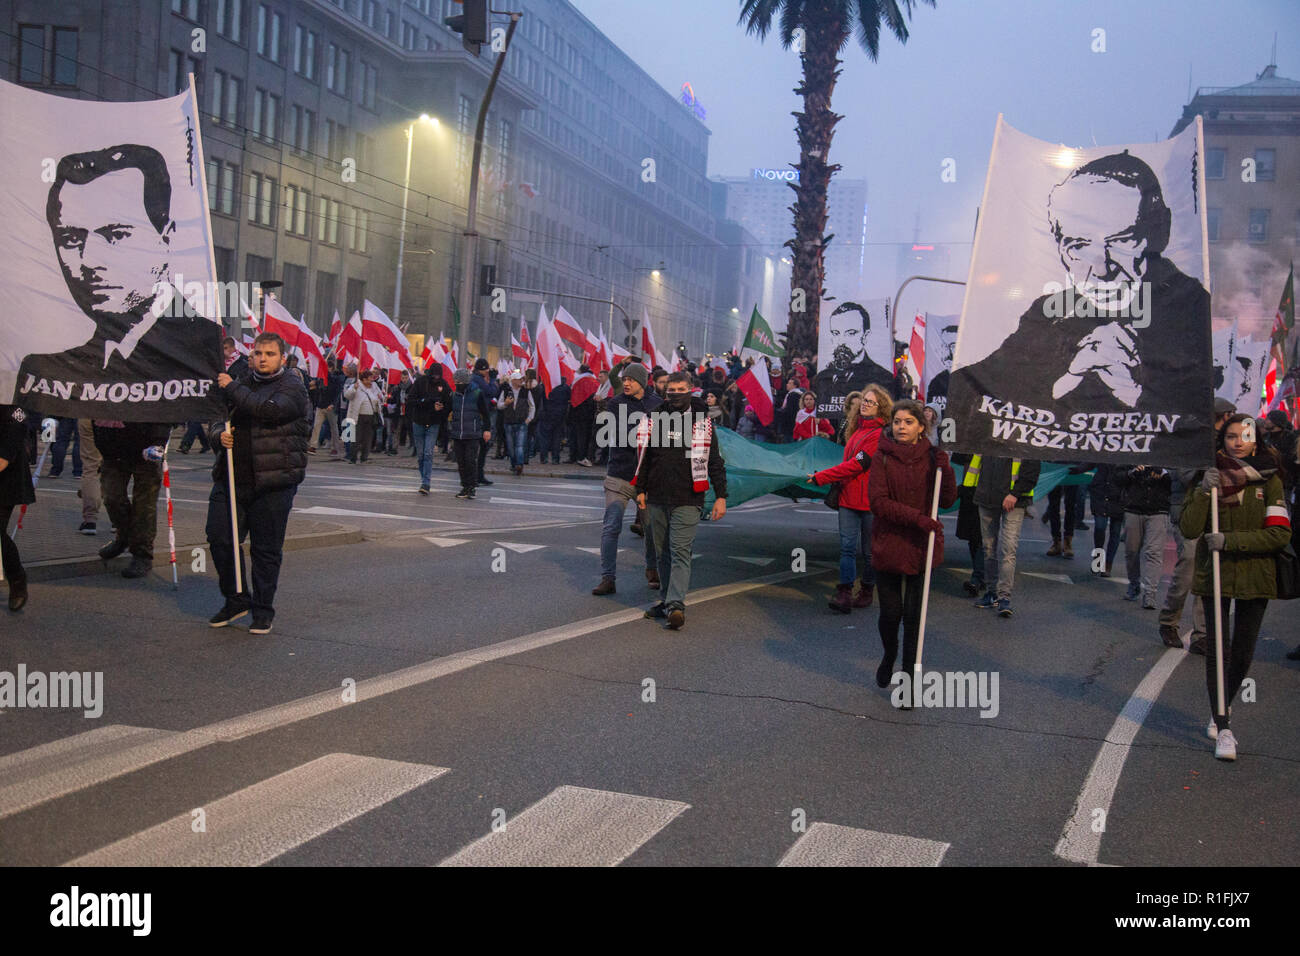 Warsaw, Poland, 11 November 2018: Celebrations of Polish Independence Day in a mass march that gathered more than 200 thousand people. All-Polish Youth (Młodzież Wszechpolska) with banners of Jan Mosdorf and Cardinal Stefan Wyszynski - Stock Image